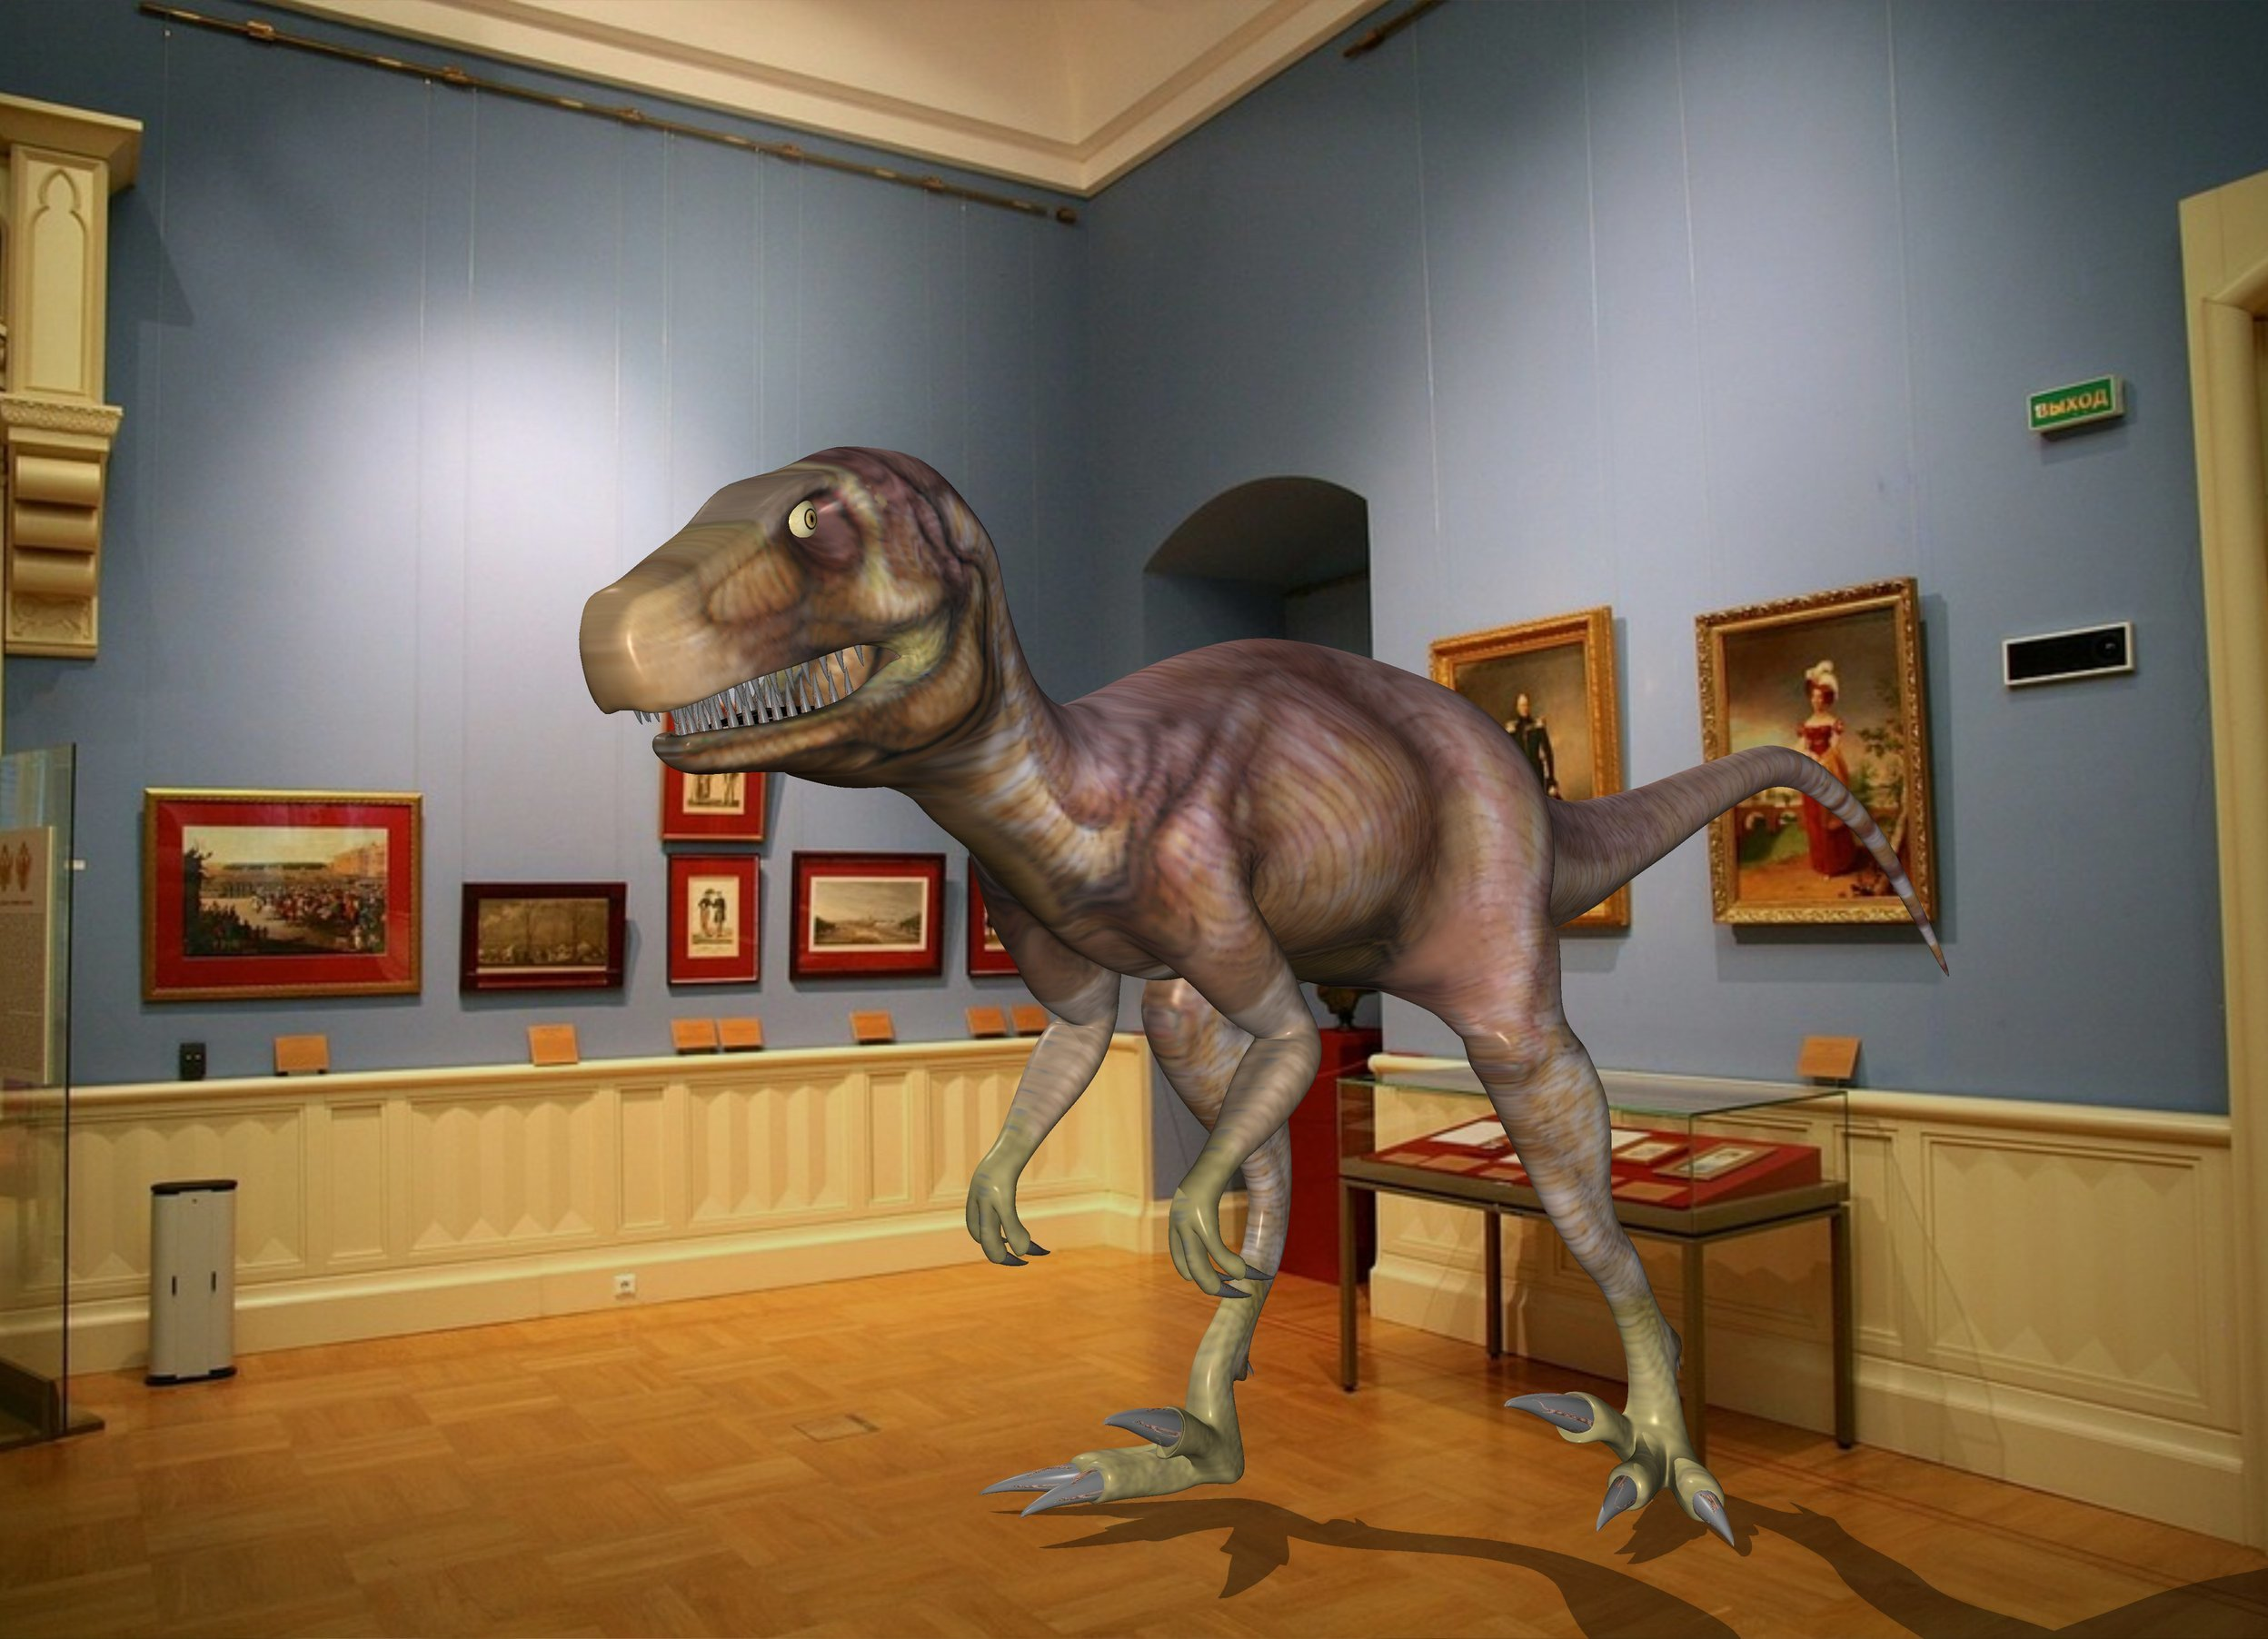 Input text: the dinosaur is in the museum.